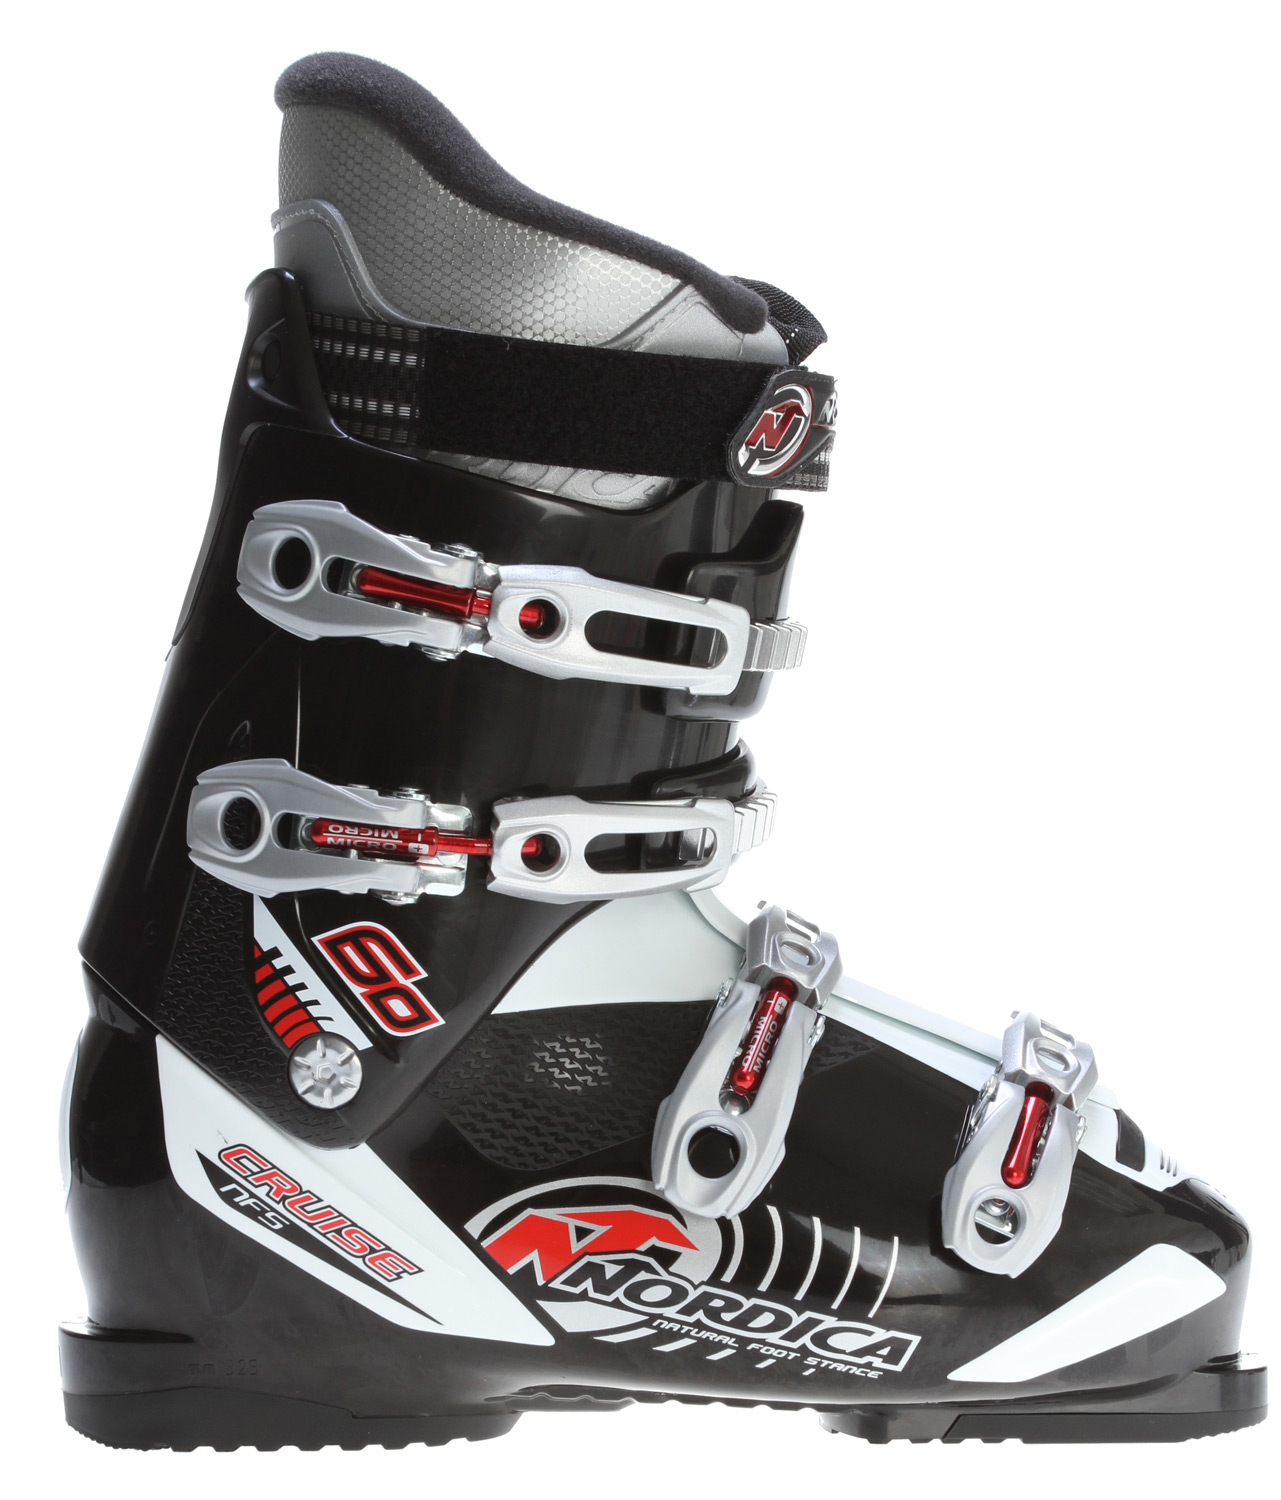 Ski Key Features of the Nordica Cruise 60 Ski Boots: NFS Natural foot stance ACP Adjustable cuff profile 3D Comfort fit liner ALU Buckles mix Size range 24.0-31.0 MP Last: 104 - $199.00